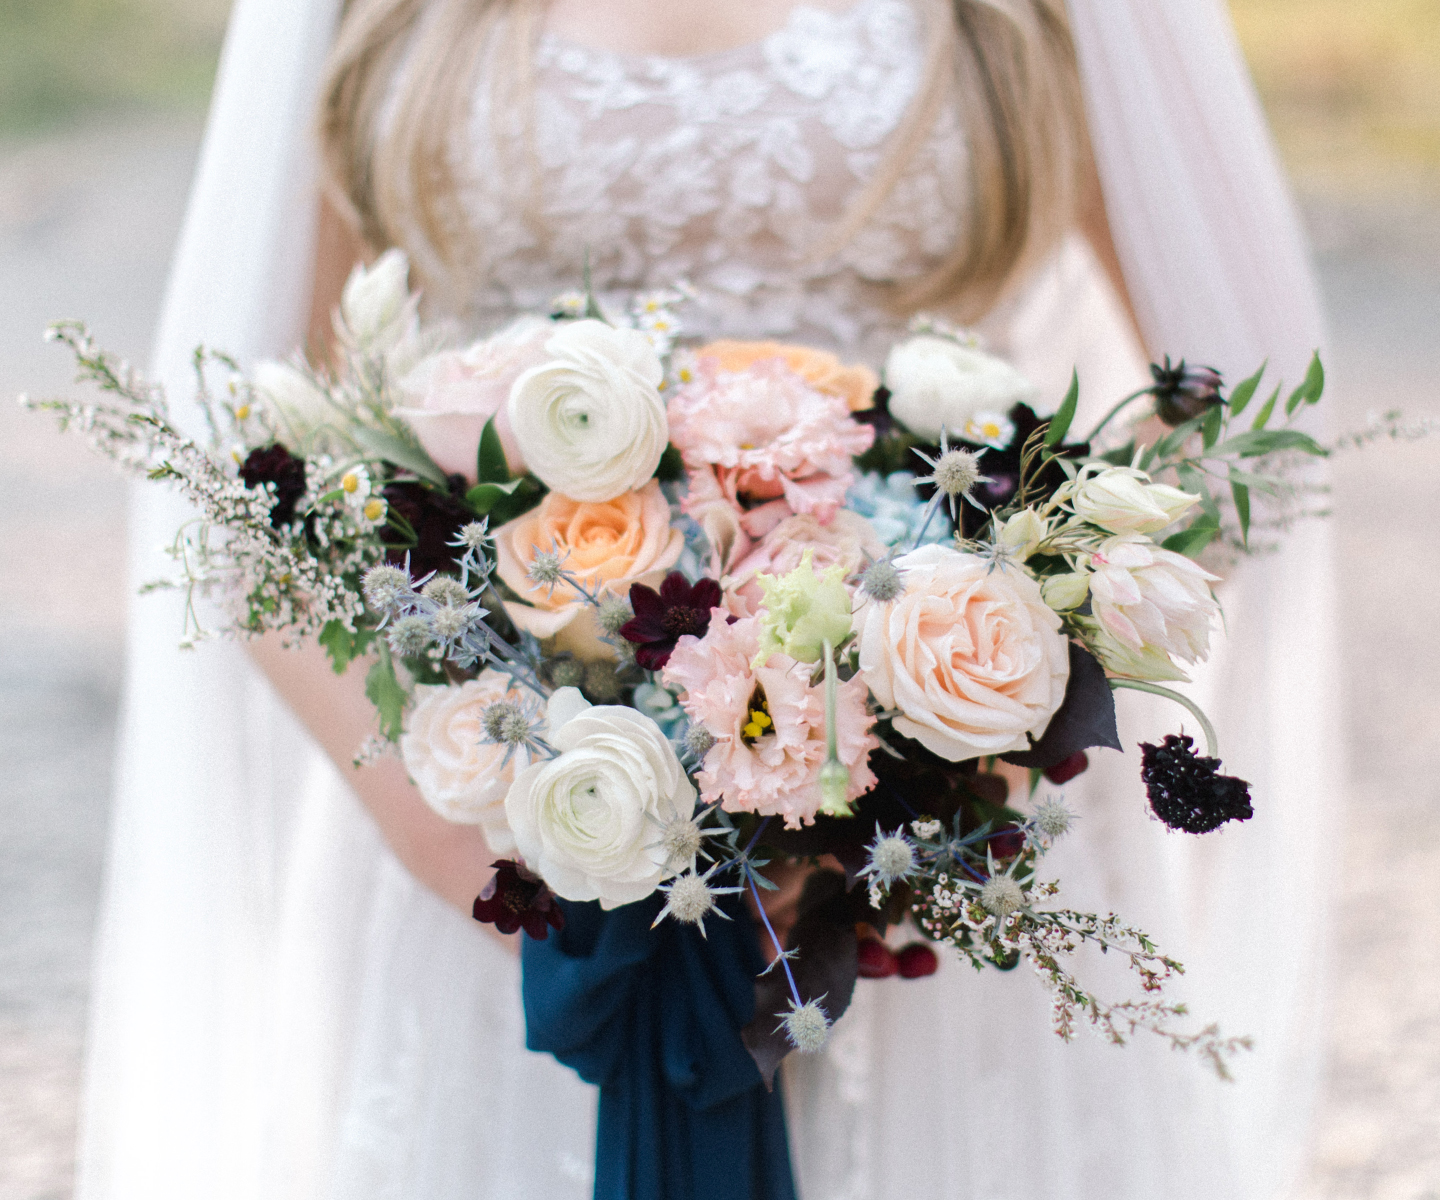 Bridal Bouquet Inspiration for Spring: 12 of the Prettiest Bouquets We've Seen This Spring in Alberta and the Rockies - Meadow and Vine on The Bronte Bride